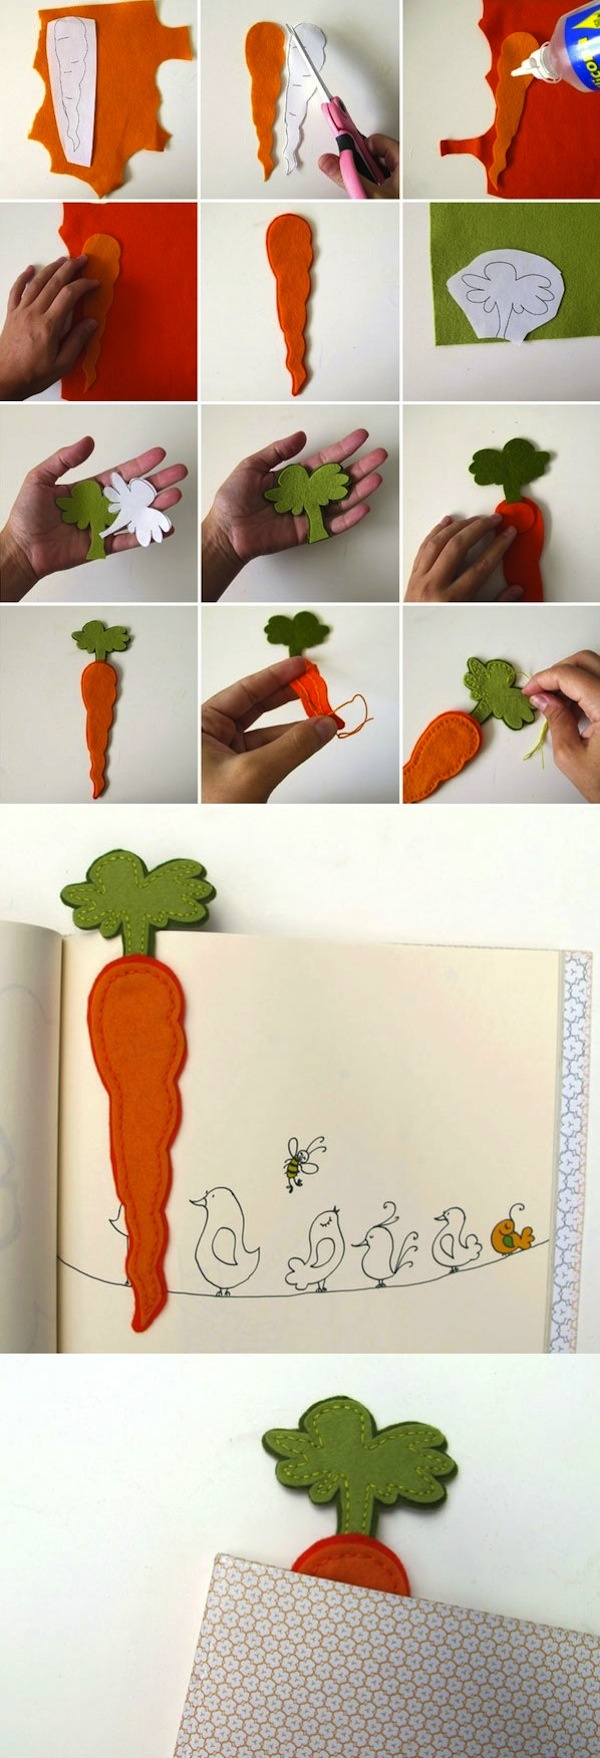 Felt food! Bookmark or for play kitchen. Fun!